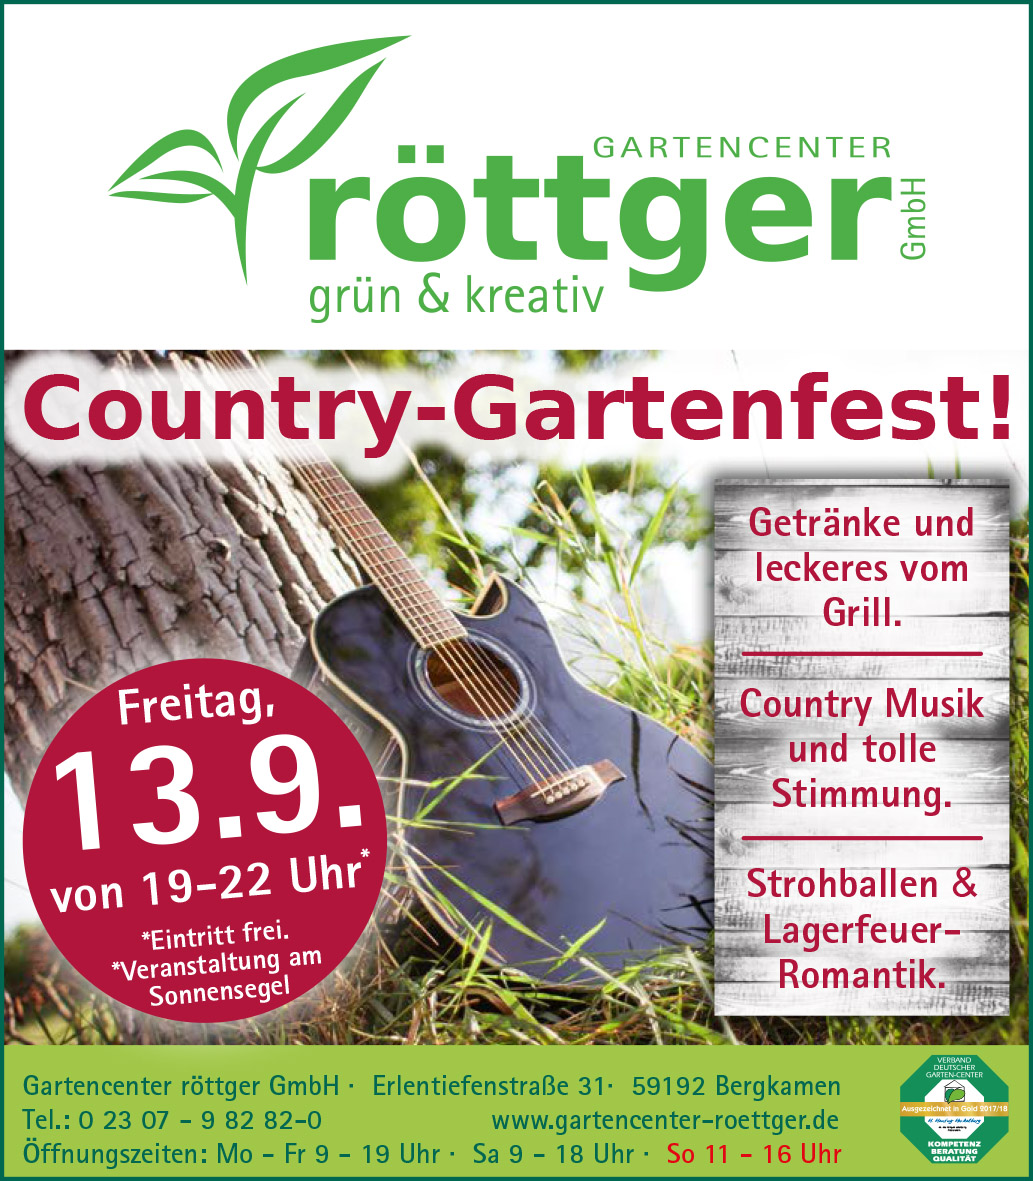 Country-Gartenfest!